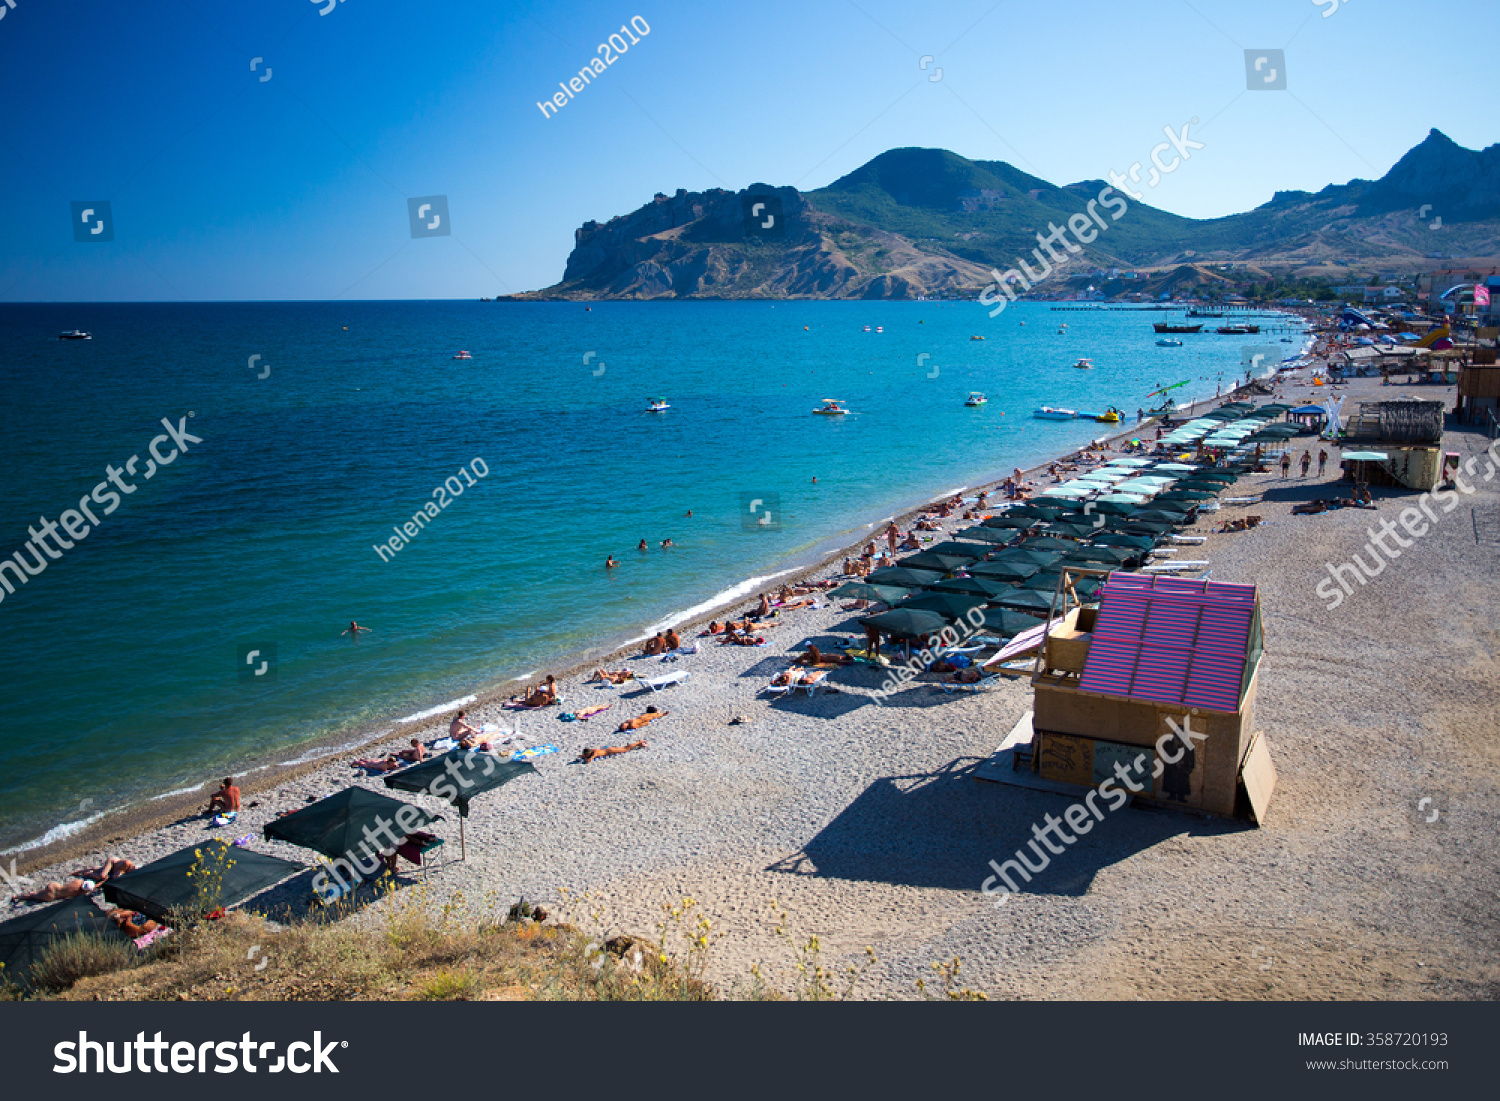 koktebel nudist beach Nudist beach in the summer at Koktebel in Crimea in the summer